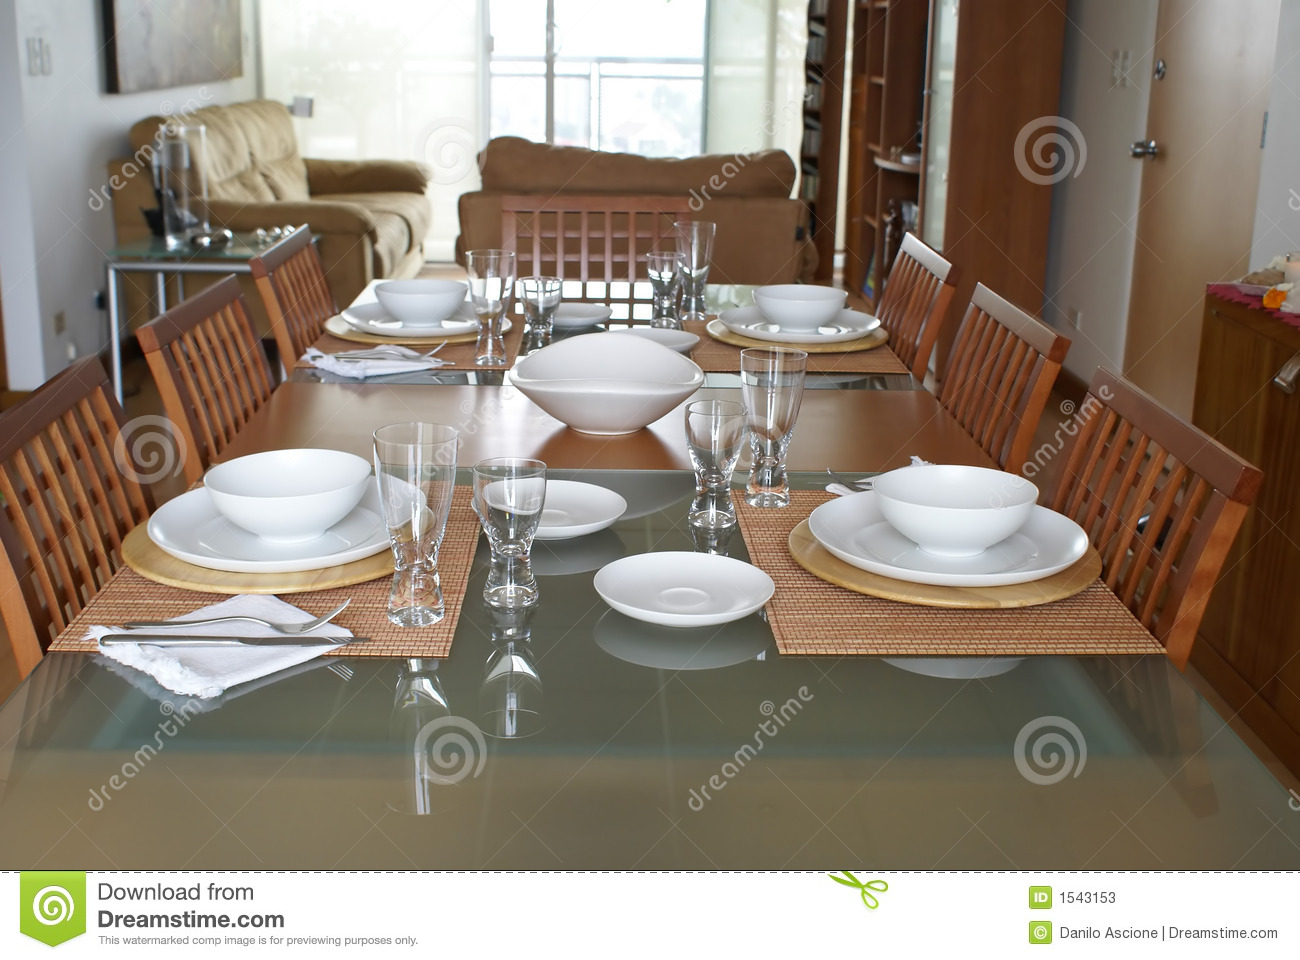 Dining room with table setting stock image image 1543153 for Dining room table setup ideas